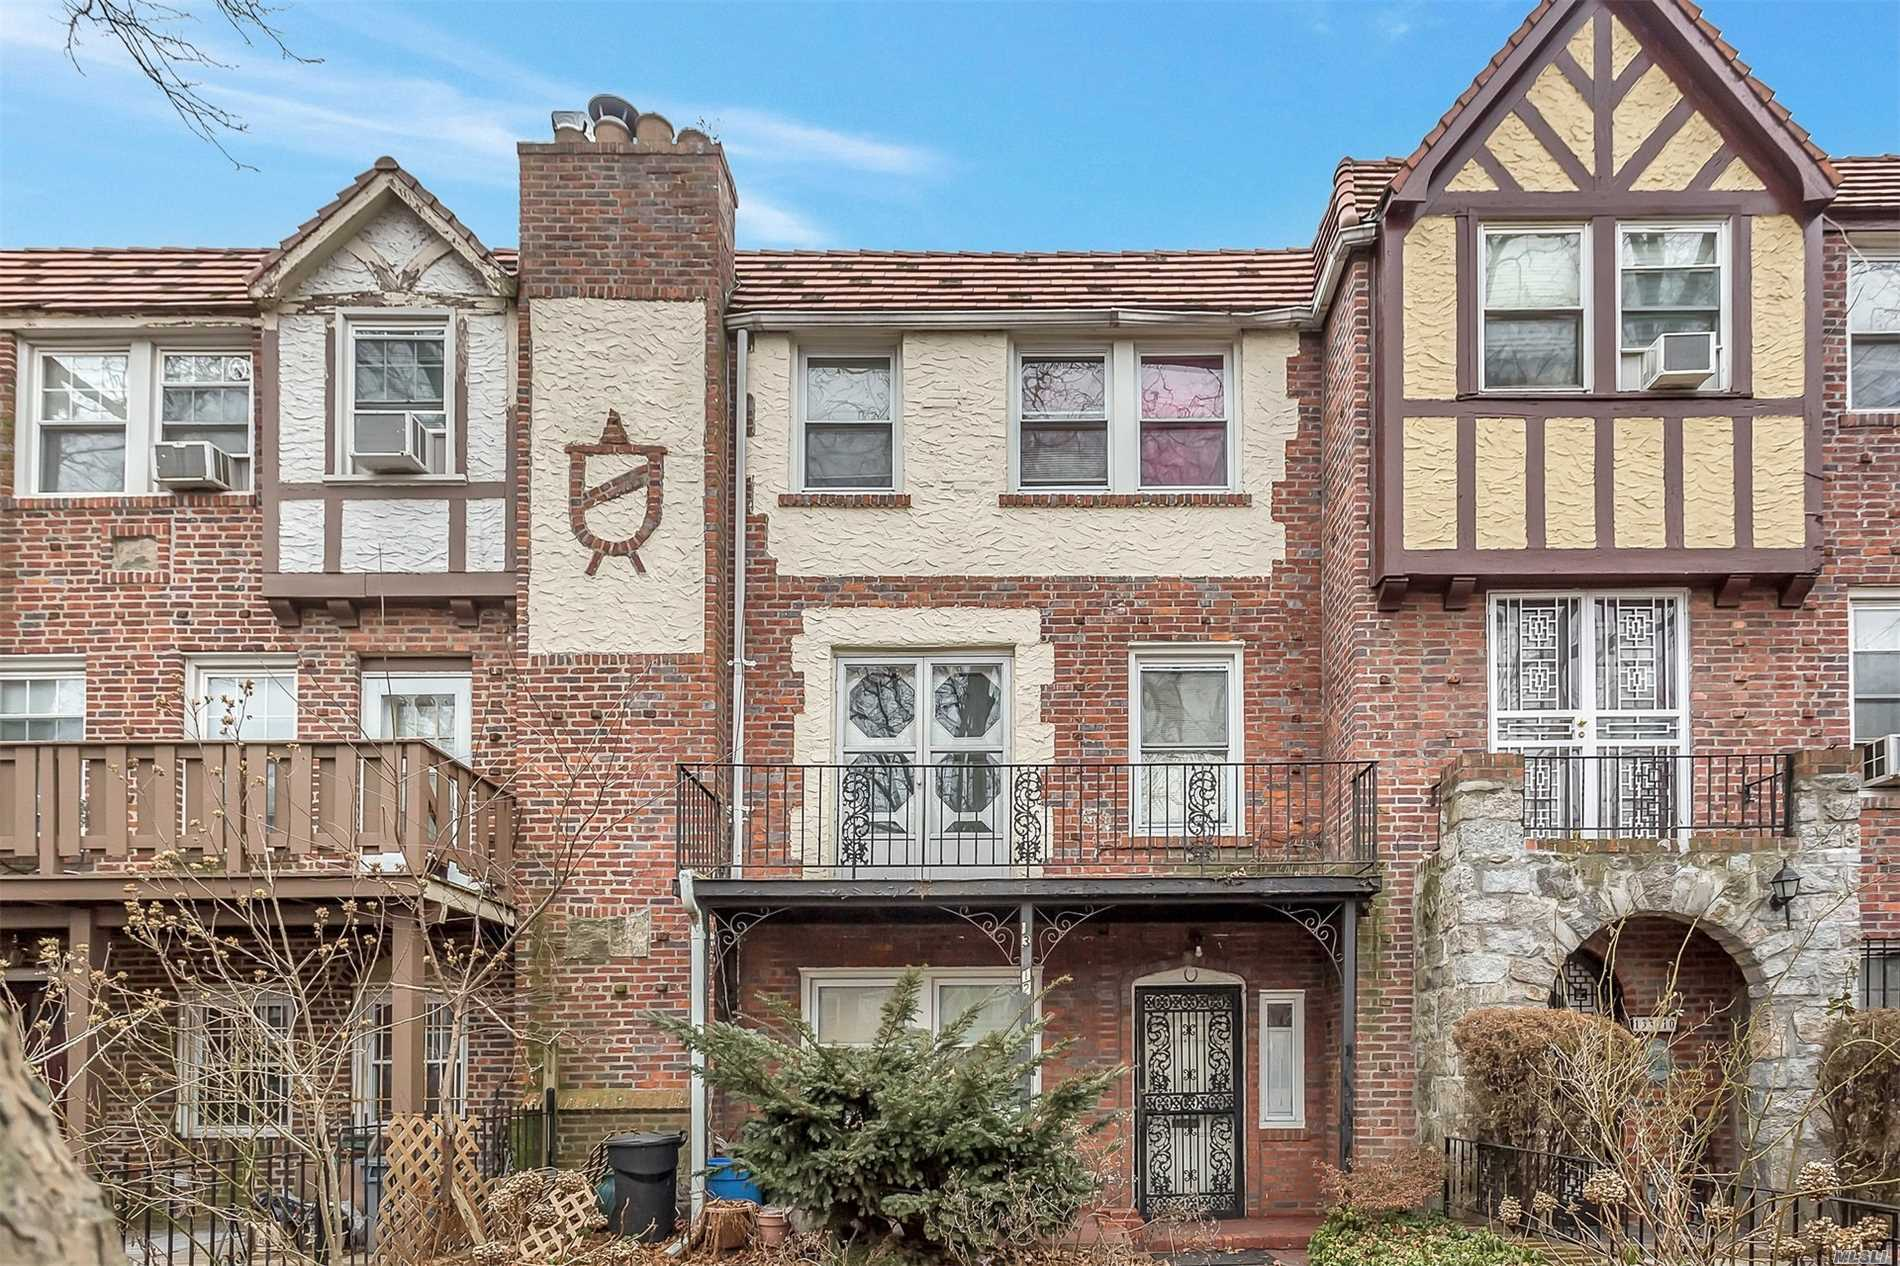 All Brick Tudor In Prime Location In Laurelton!!Convenient To Transportation, Parkway, Parks And Shopping!!! Ready For Your Own Personal Touch! Hardwood Floors, Eat In Kitchen, Formal Dr & Lr!